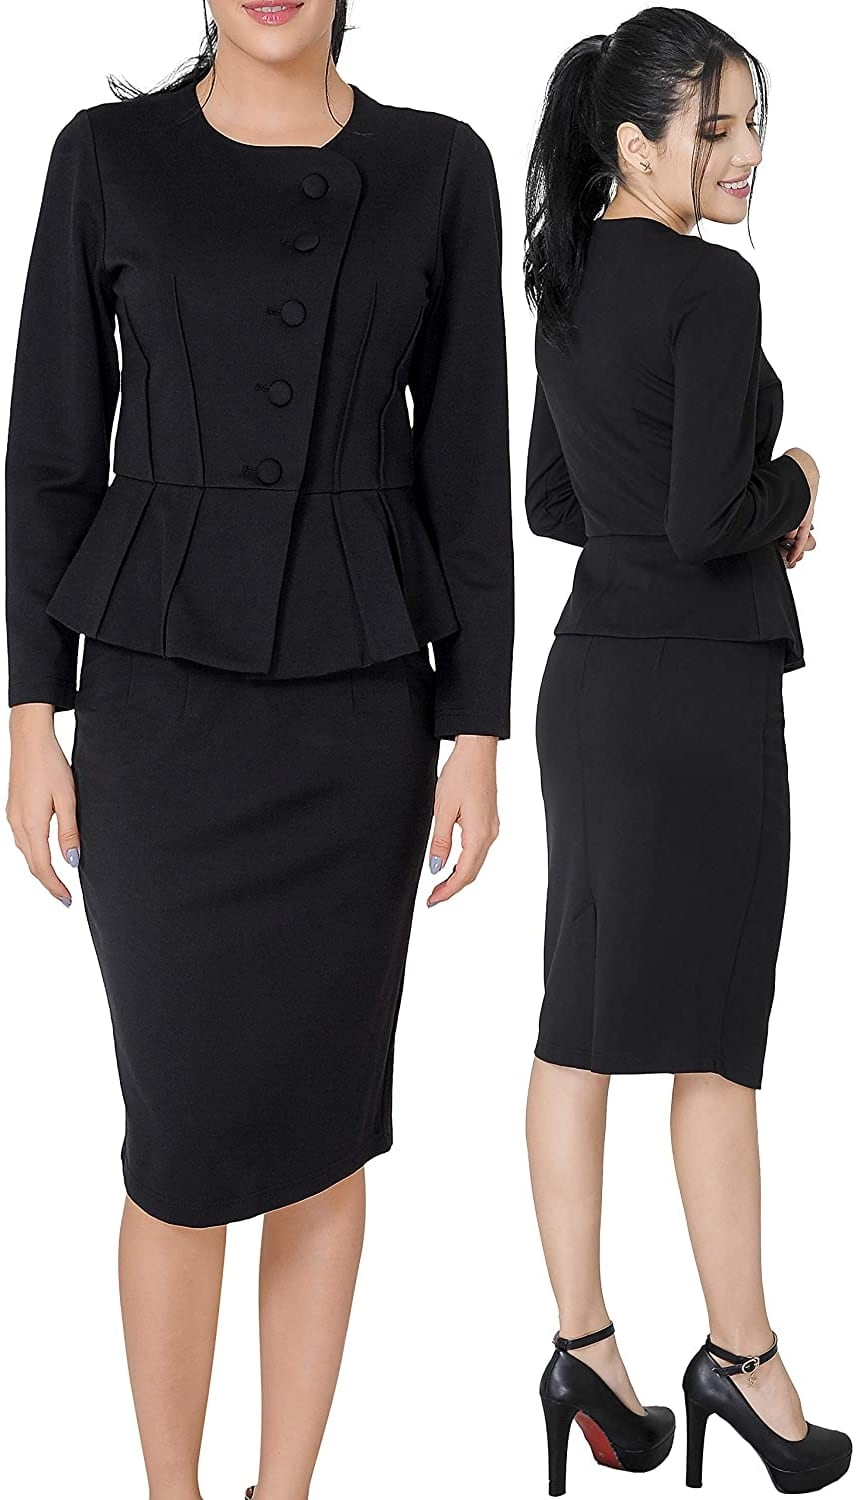 A black skirt suit like Marycrafts' is also perfect for funerals